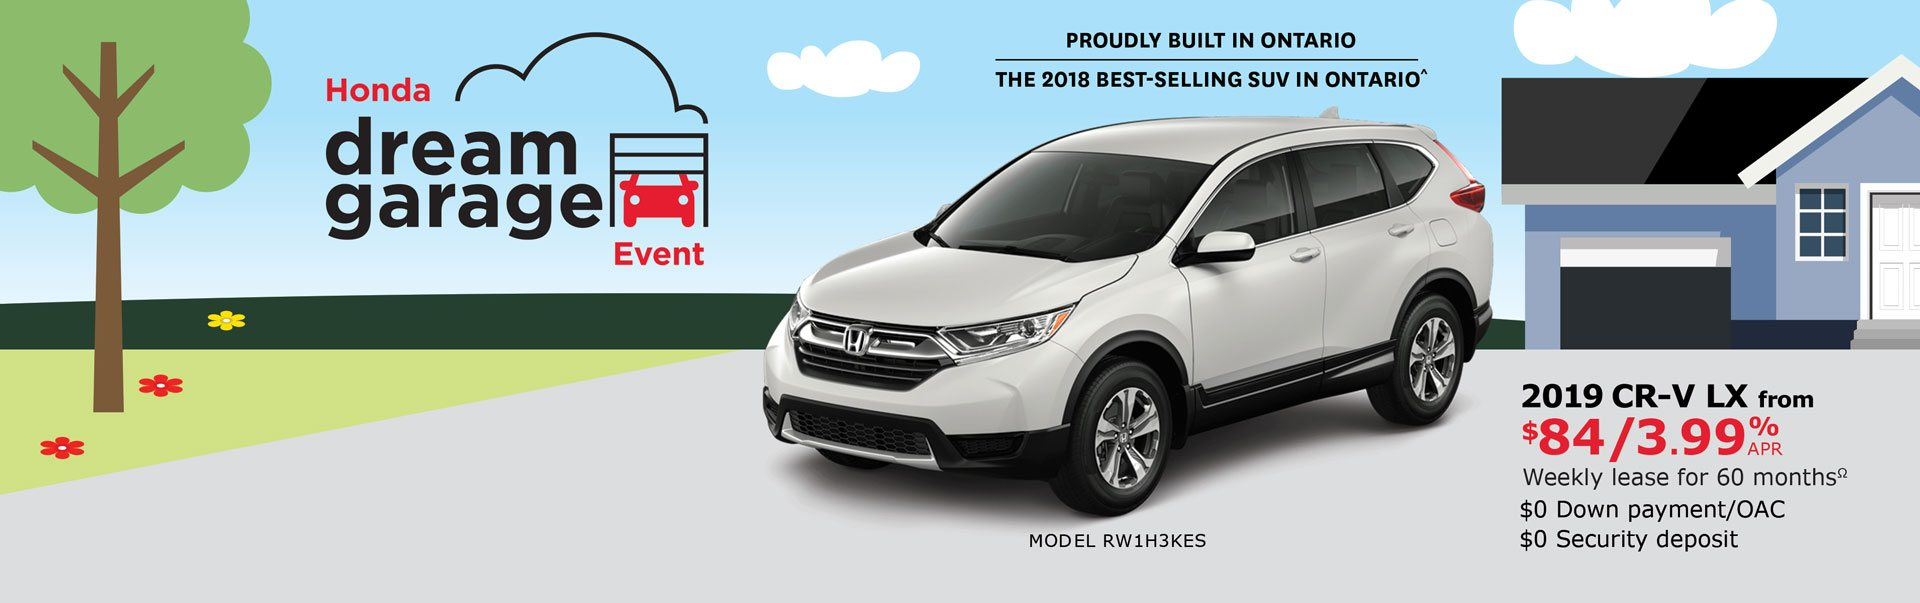 2019 CR-V from $84 Weekly